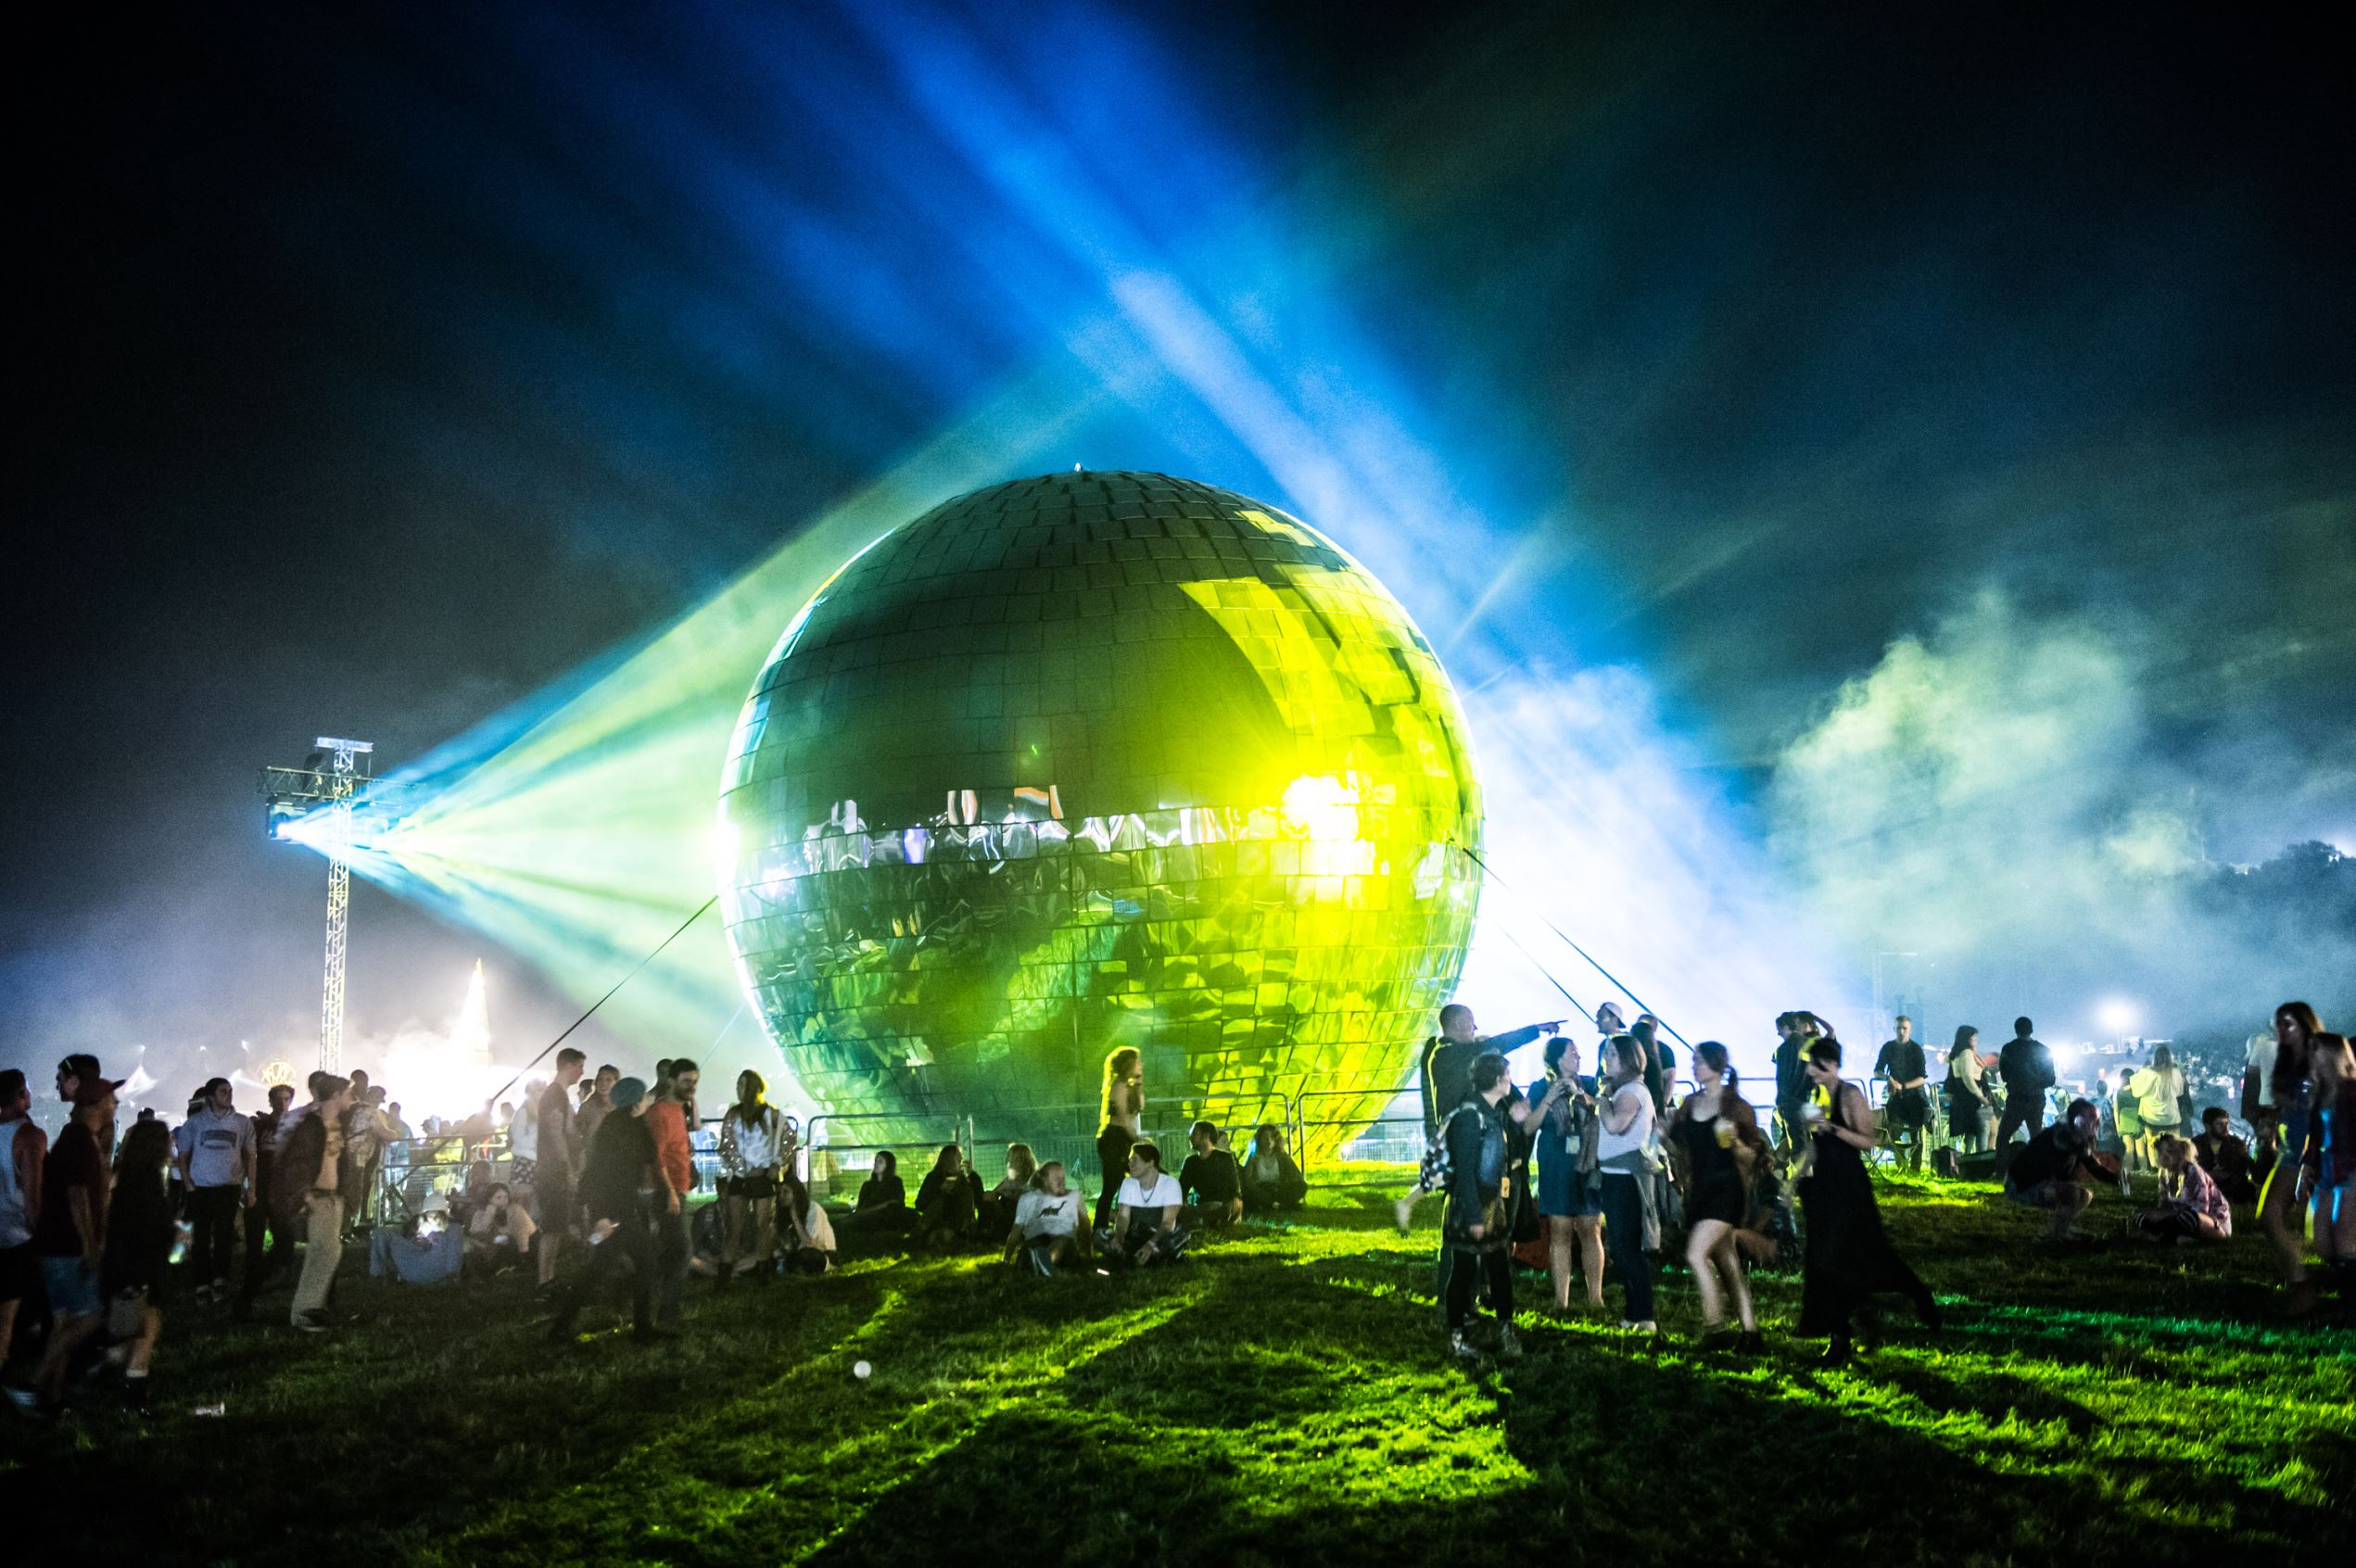 Slide 16 of 19: Festival goers enjoy the atmosphere around the official Guinness World Record holding Largest Disco Ball on the first nigh at the end of Day 1 of Bestival 2014 at Robin Hill Country Park on September 4, 2014 in Newport, Isle of Wight.